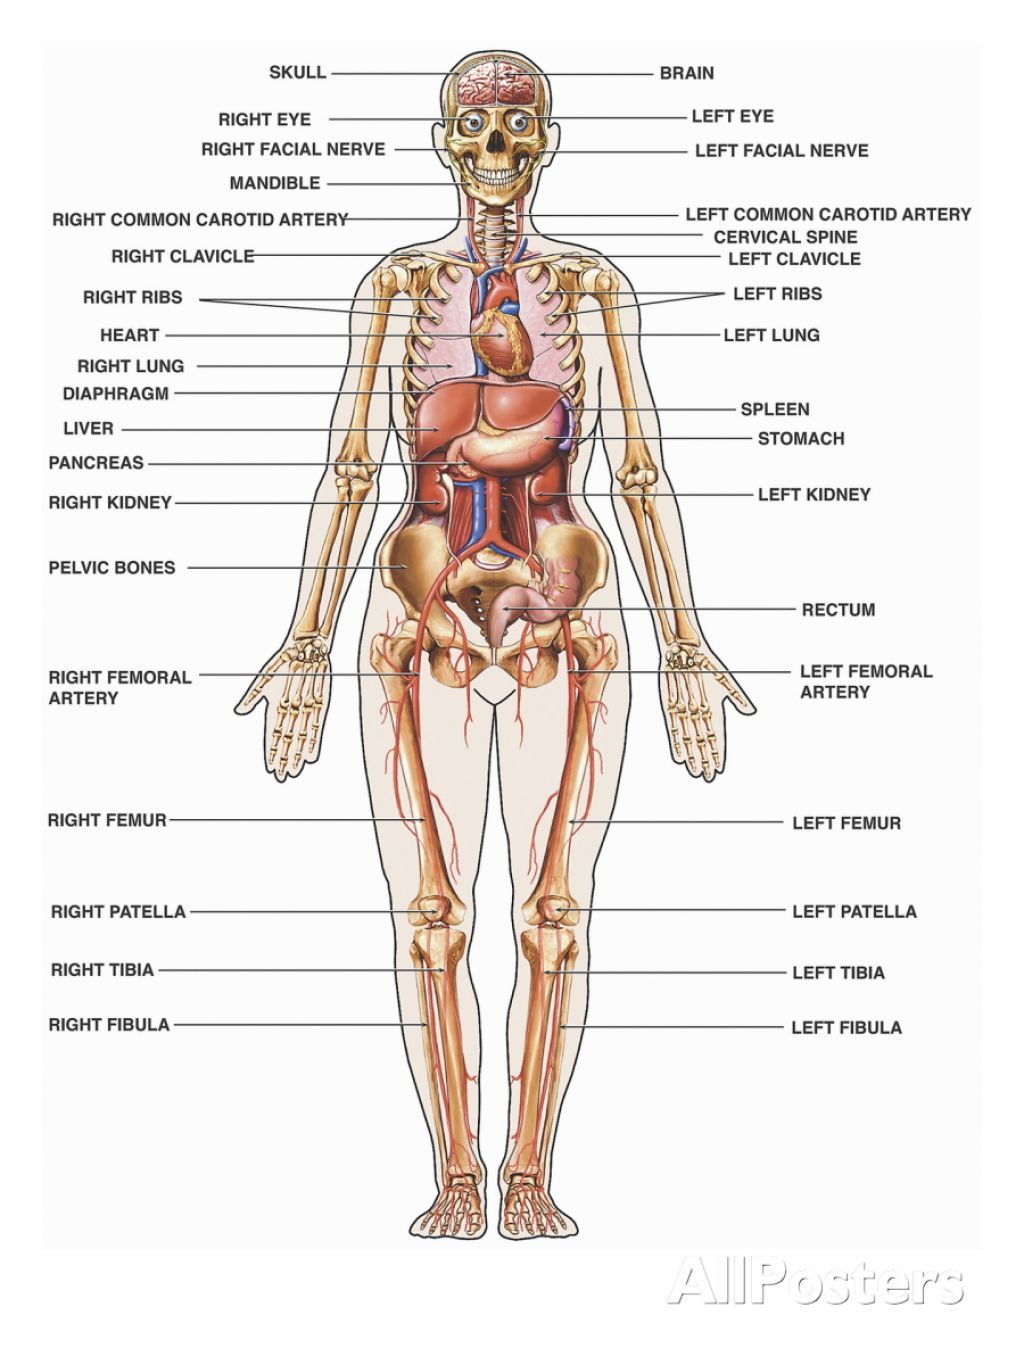 human body parts labeled anatomy human body parts mell tk [ 1024 x 1365 Pixel ]